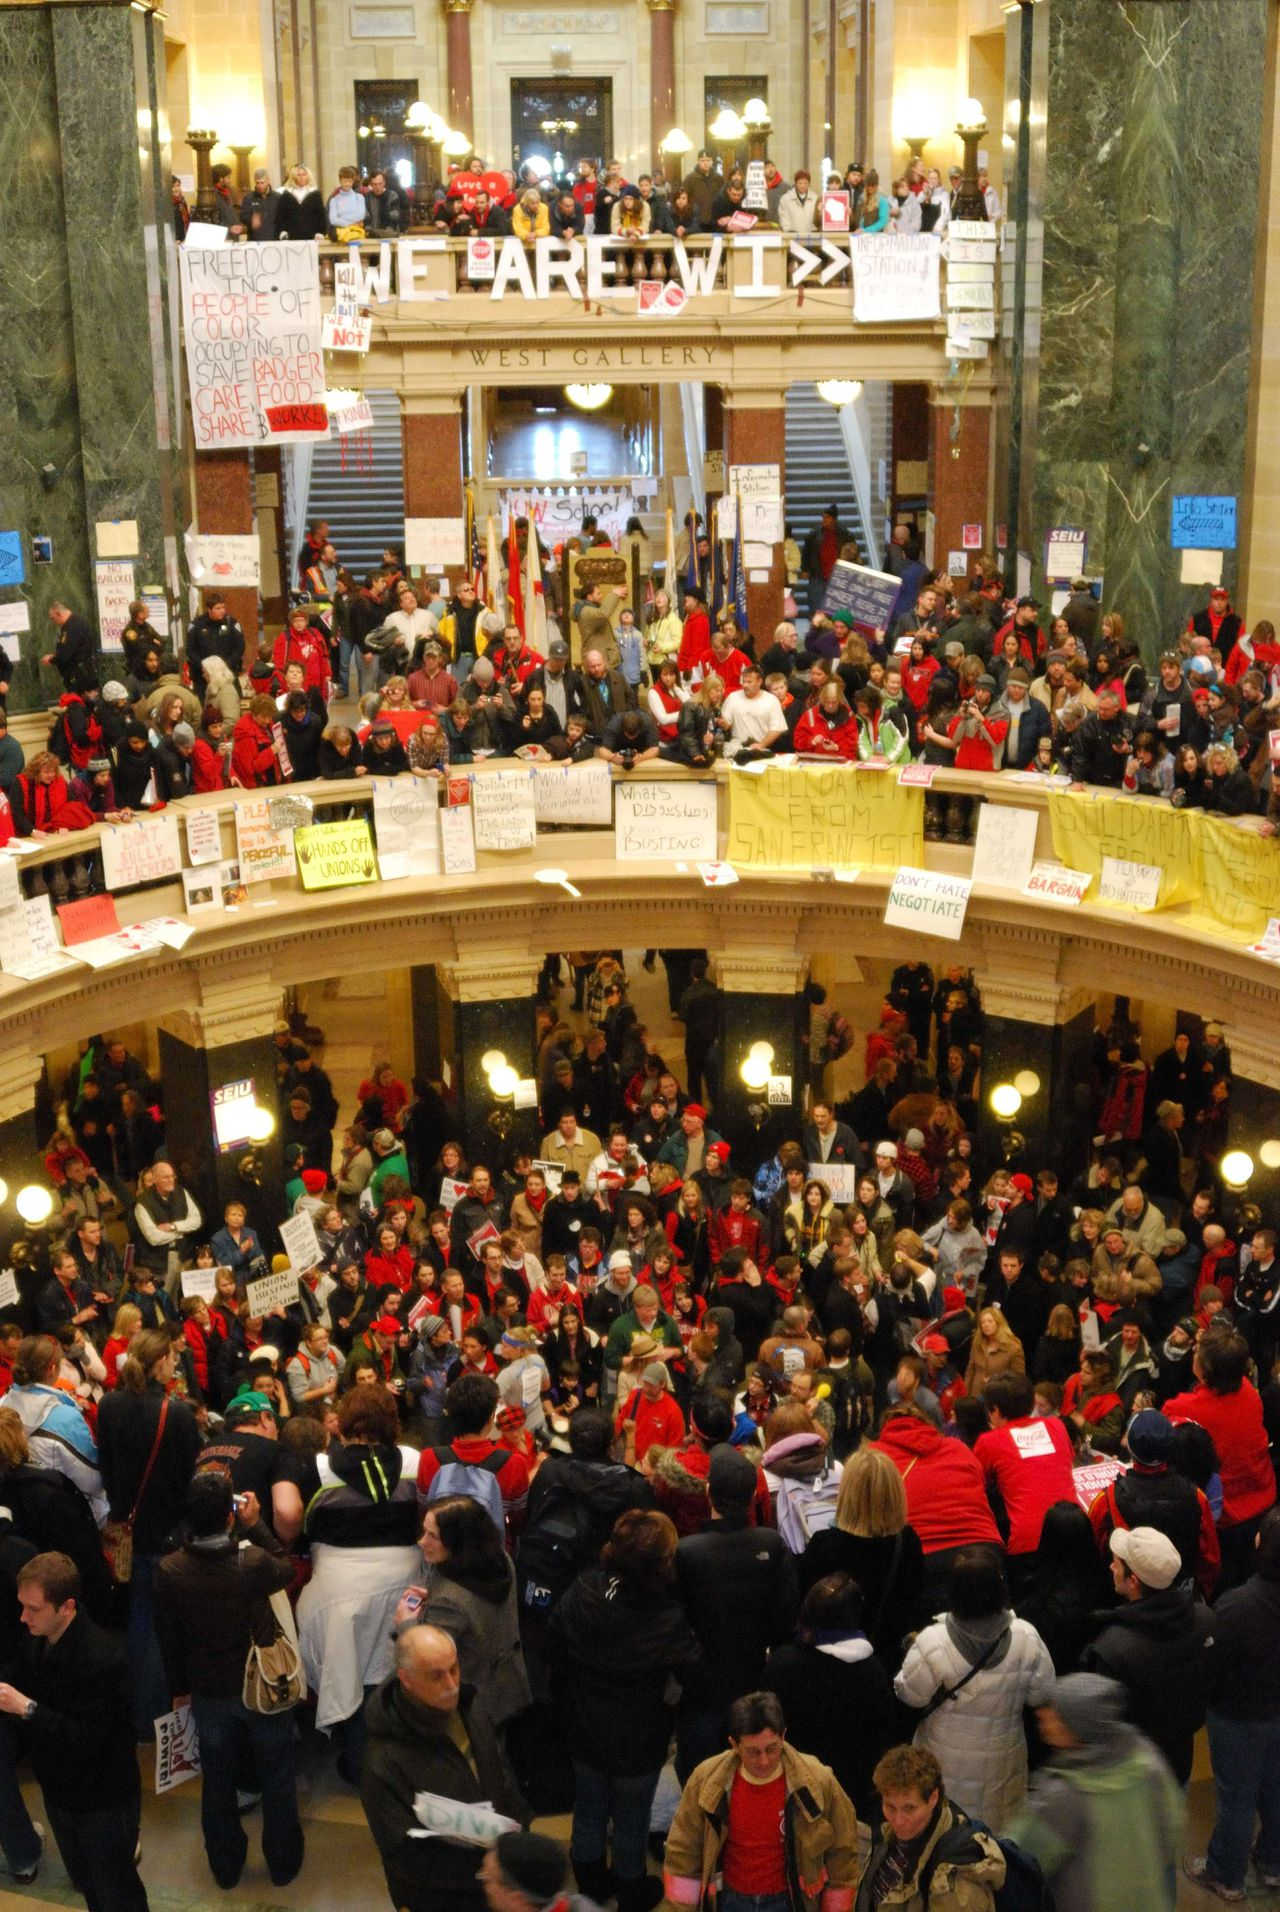 An estimated 65,000 protestors descended on Wisconsin's legislature on February 19,2011 in the fifth day of mass demonstrations against a Republican plan to bust public workers unions. Demonstrators who have camped out in capitol dome since Tuesday insisted that they will not give up the fight against what they see as a broad plan by Republicans to undermine working people and the Democratic Party they support. AFP PHOTO / Mira OBERMAN